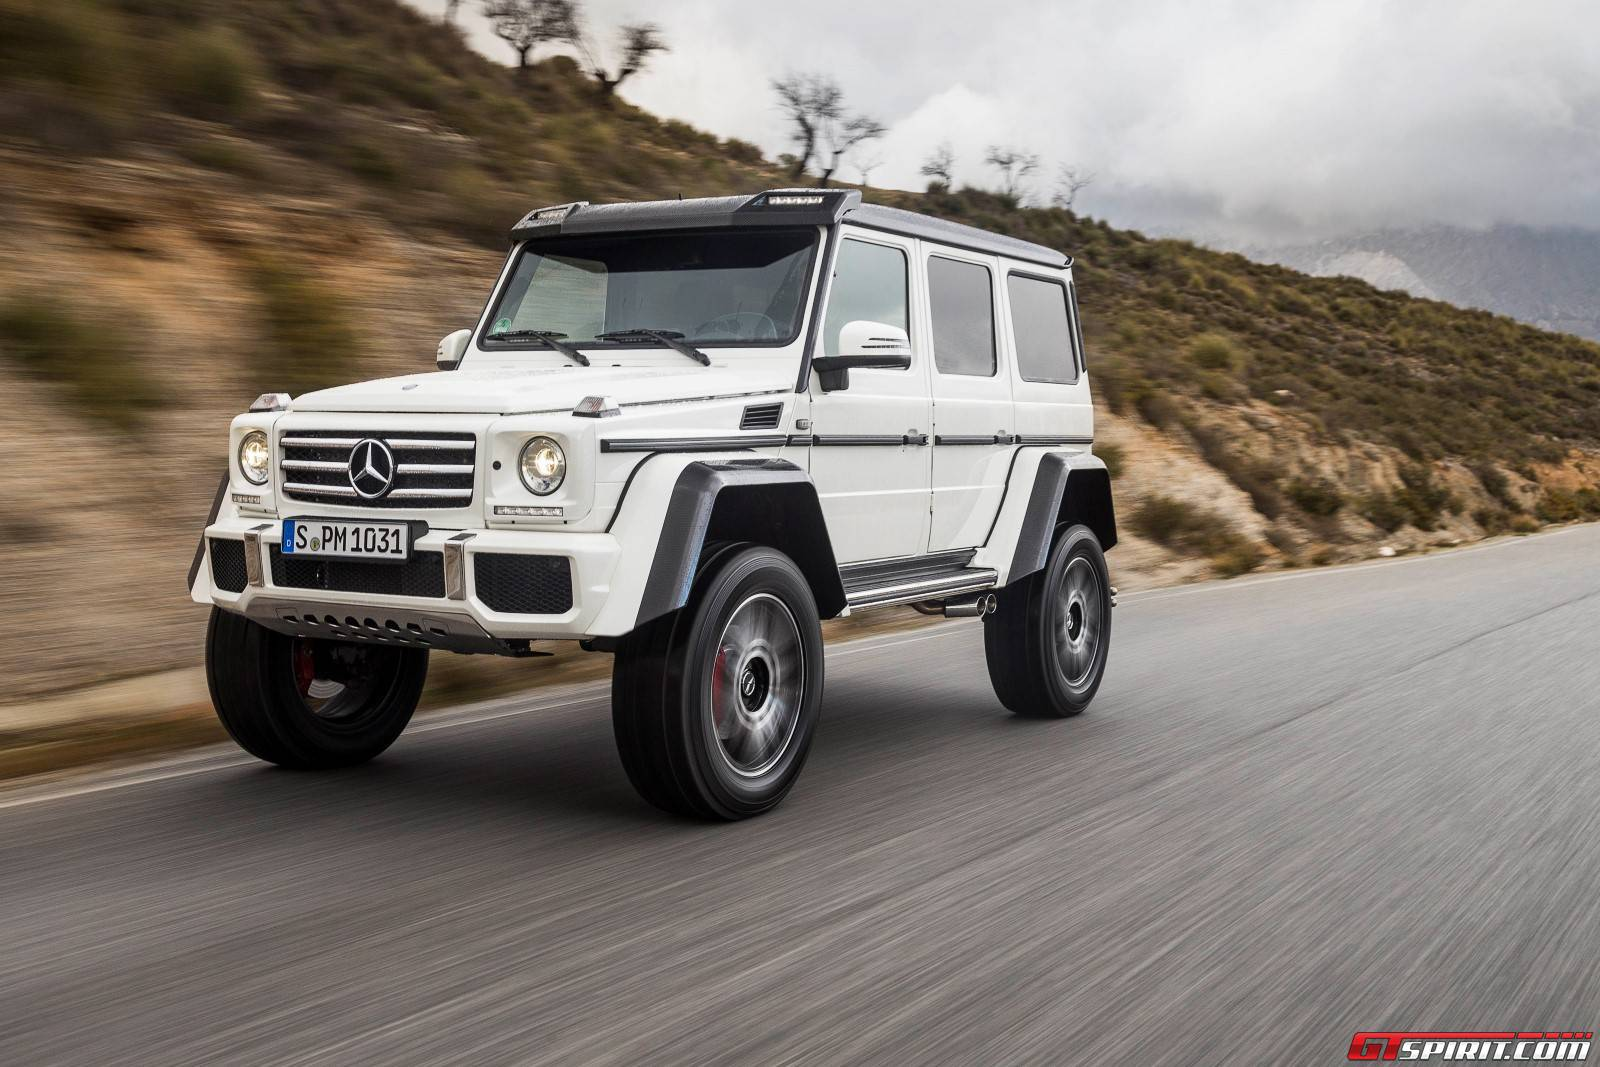 Mercedes benz g500 4x4 square mercedes benz for Mercedes benz 4x4 squared